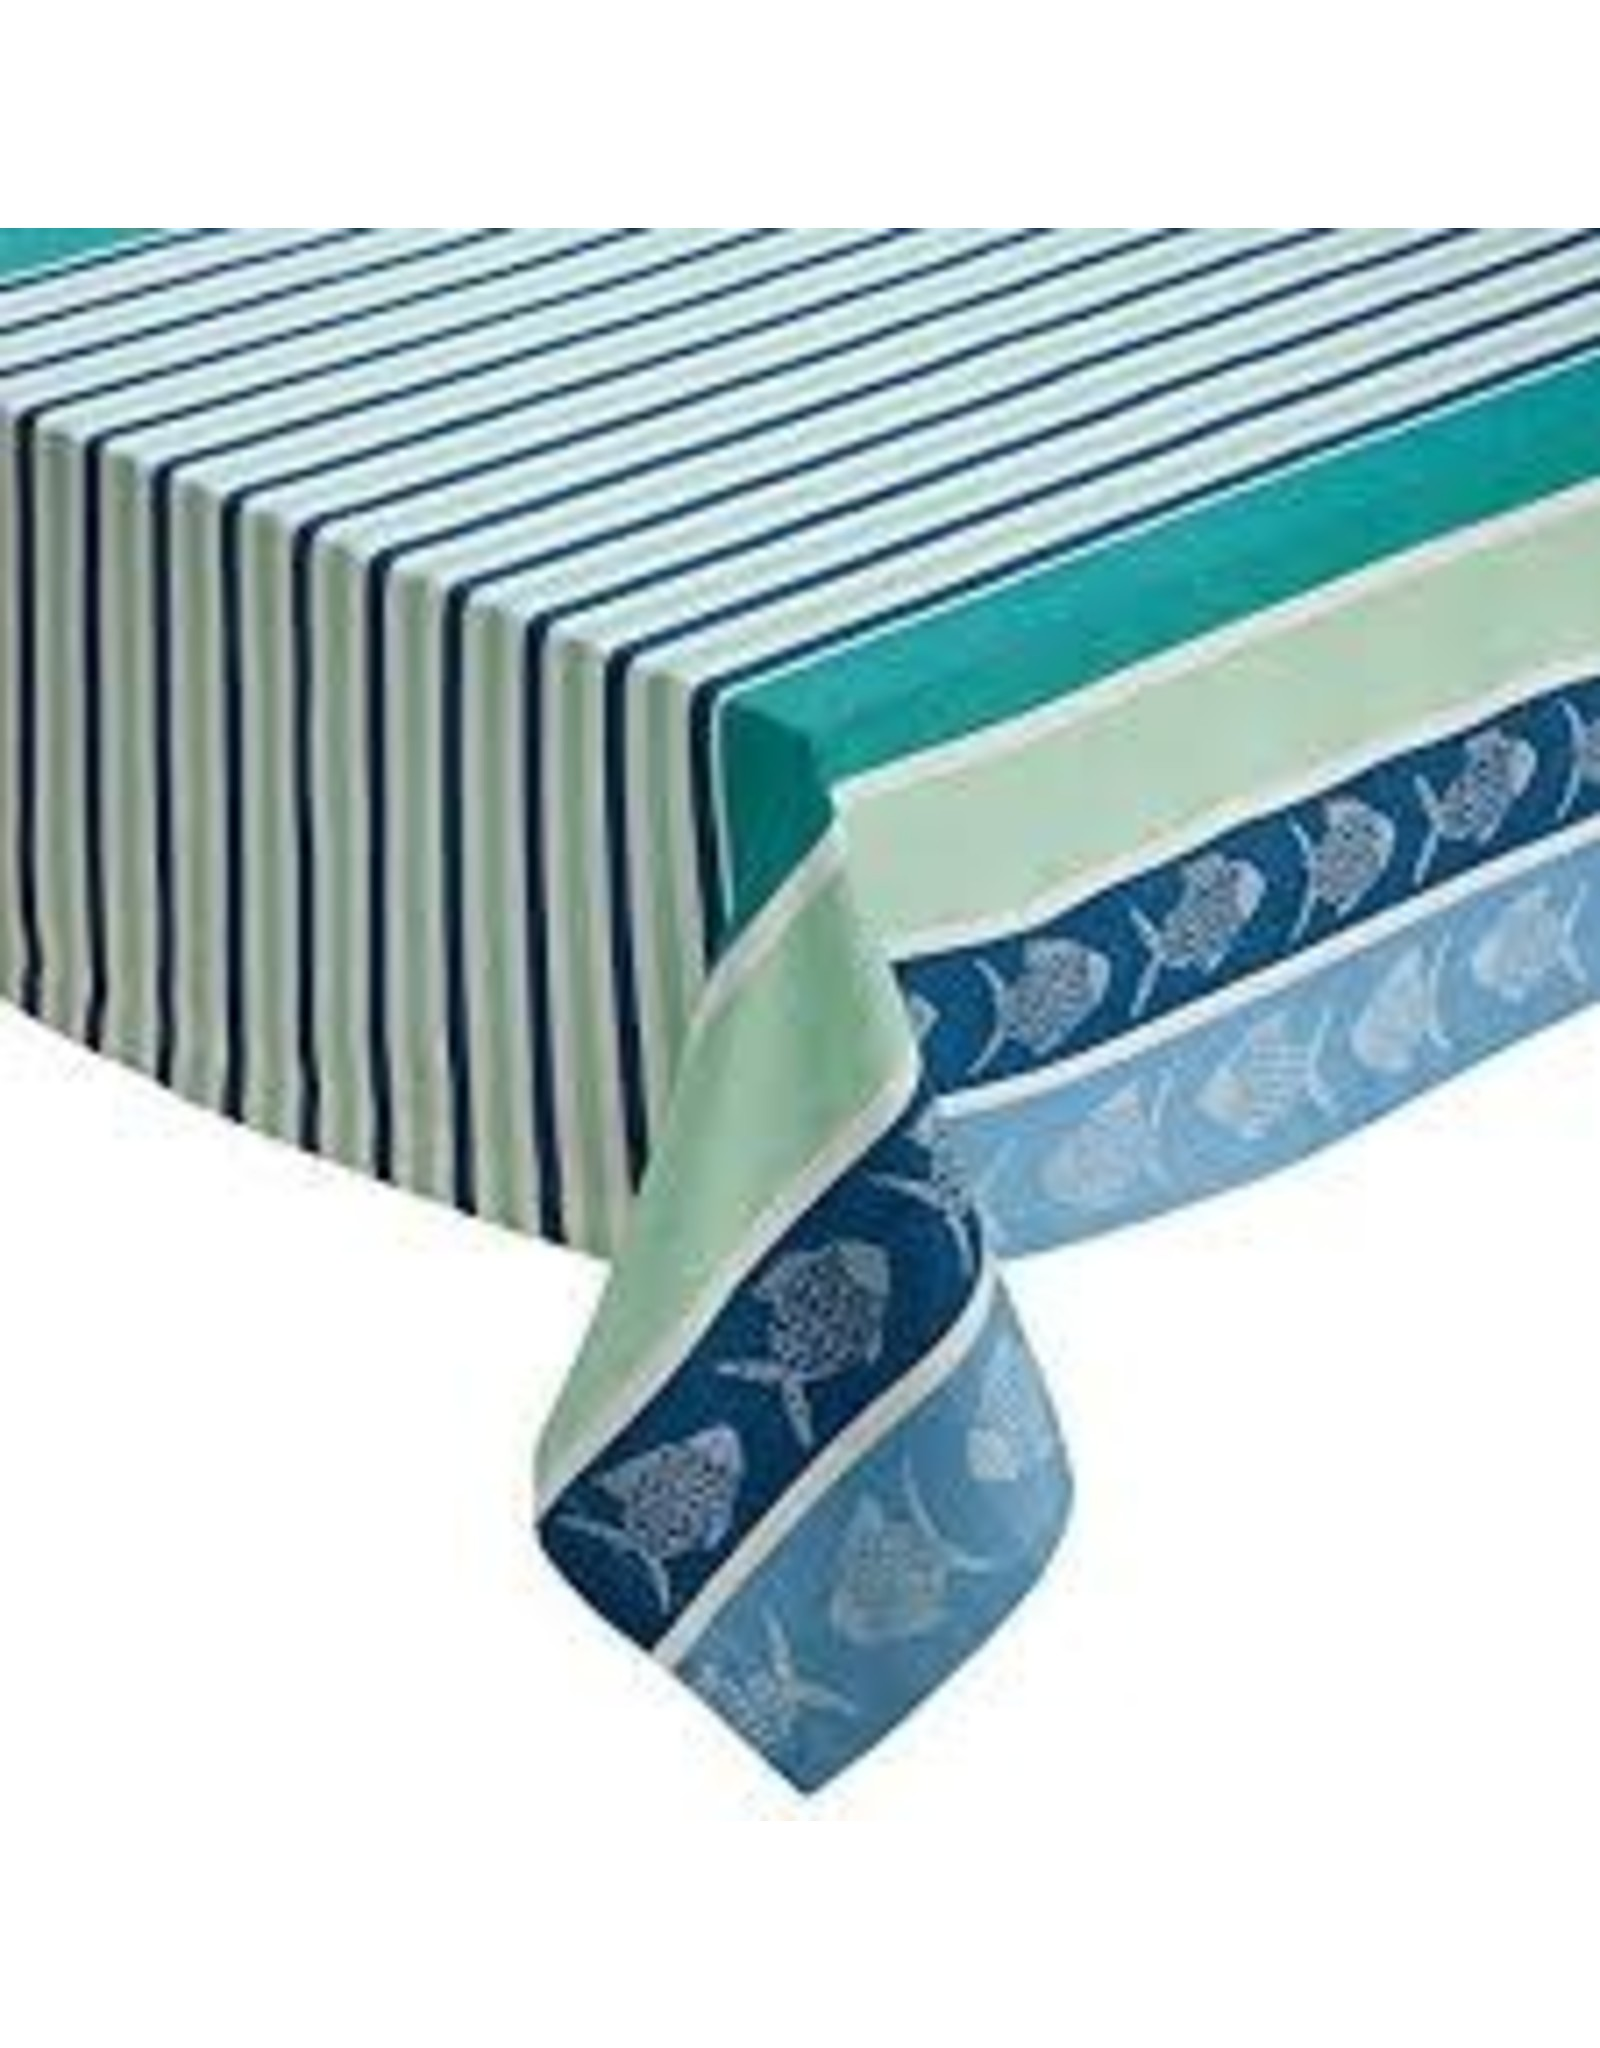 Design Imports DI- Deep Sea Stripe Jacquard Tablecloth 60x84